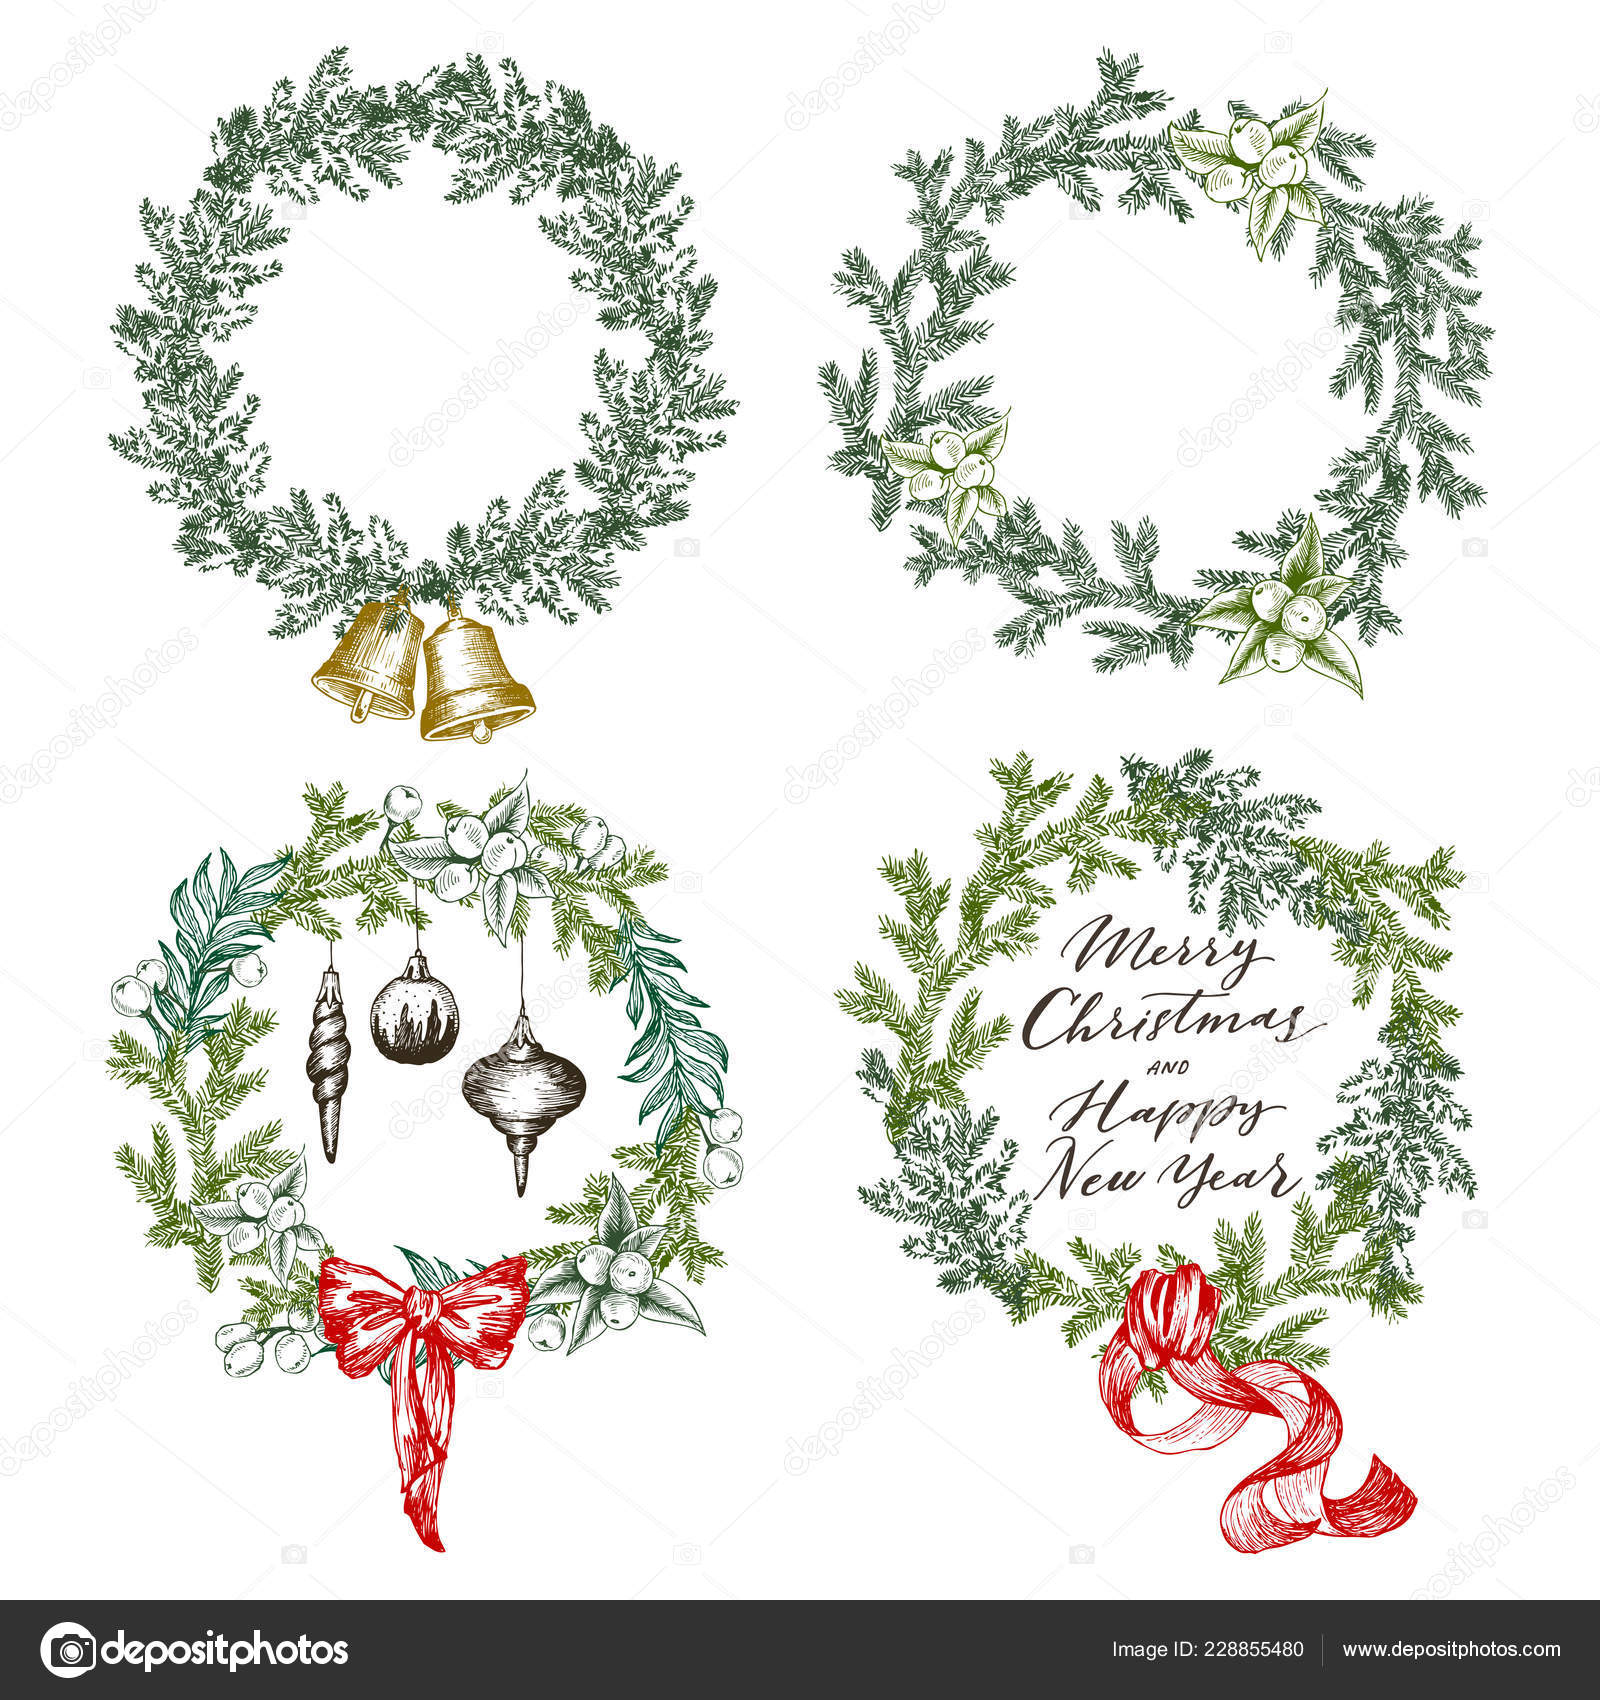 New Year Greeting Card Elements Christmas Wreath Set With Winter Floral Hand Drawing Vector Illustration In Engraving Style Vector Image By C Ledepict Gmail Com Vector Stock 228855480